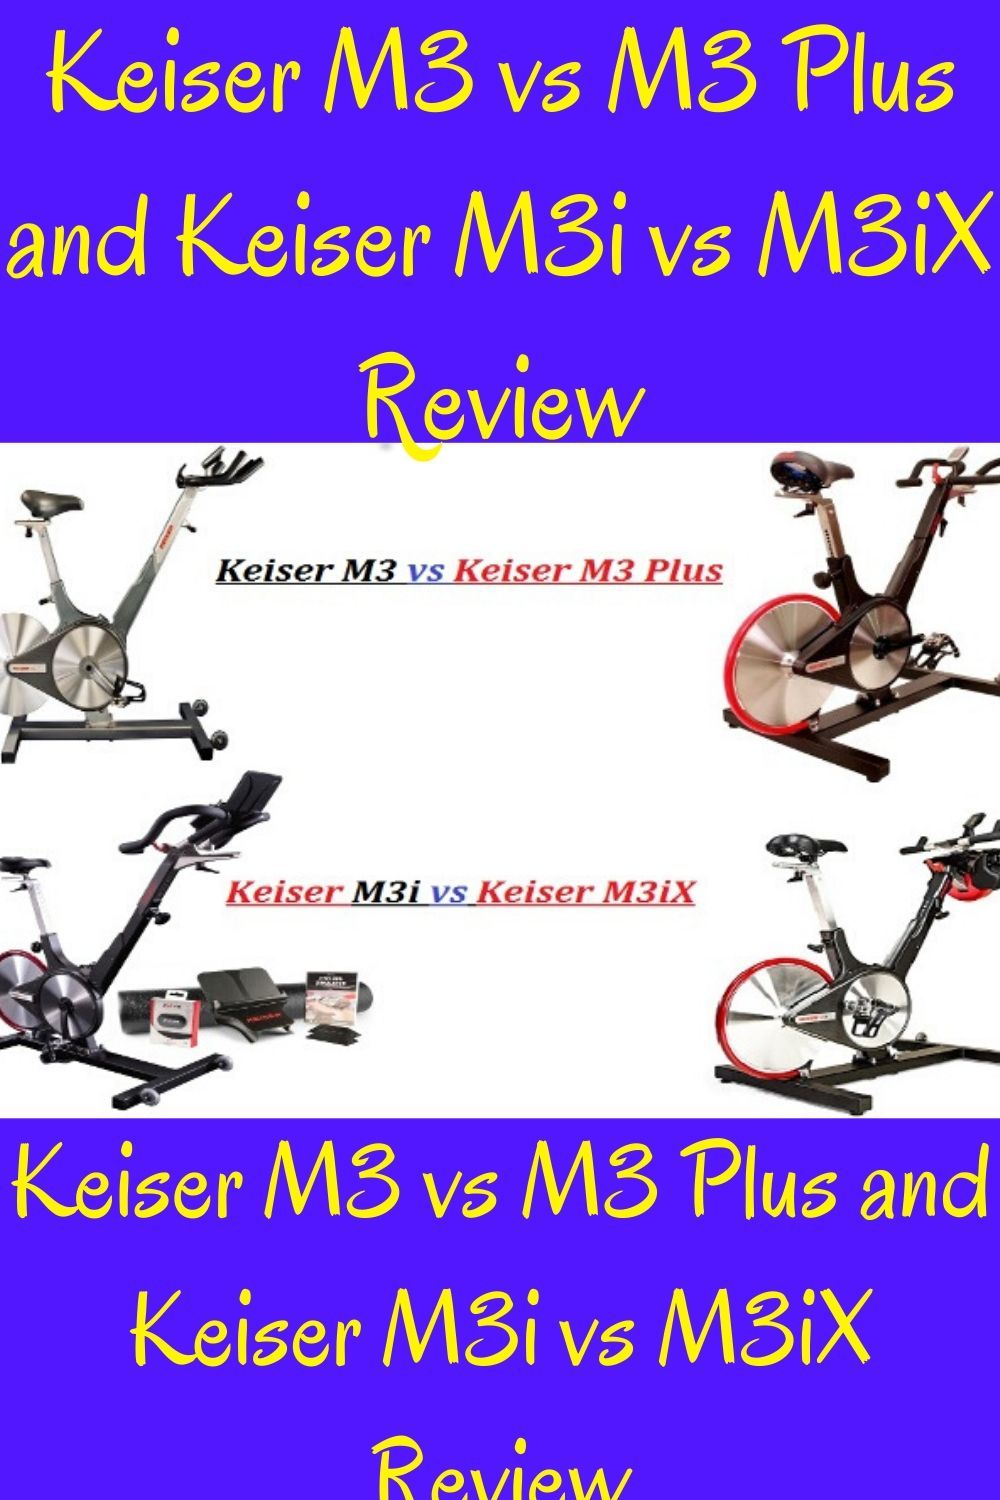 Keiser M3 Vs M3 Plus And M3i Vs M3ix Review To Help You Choose In